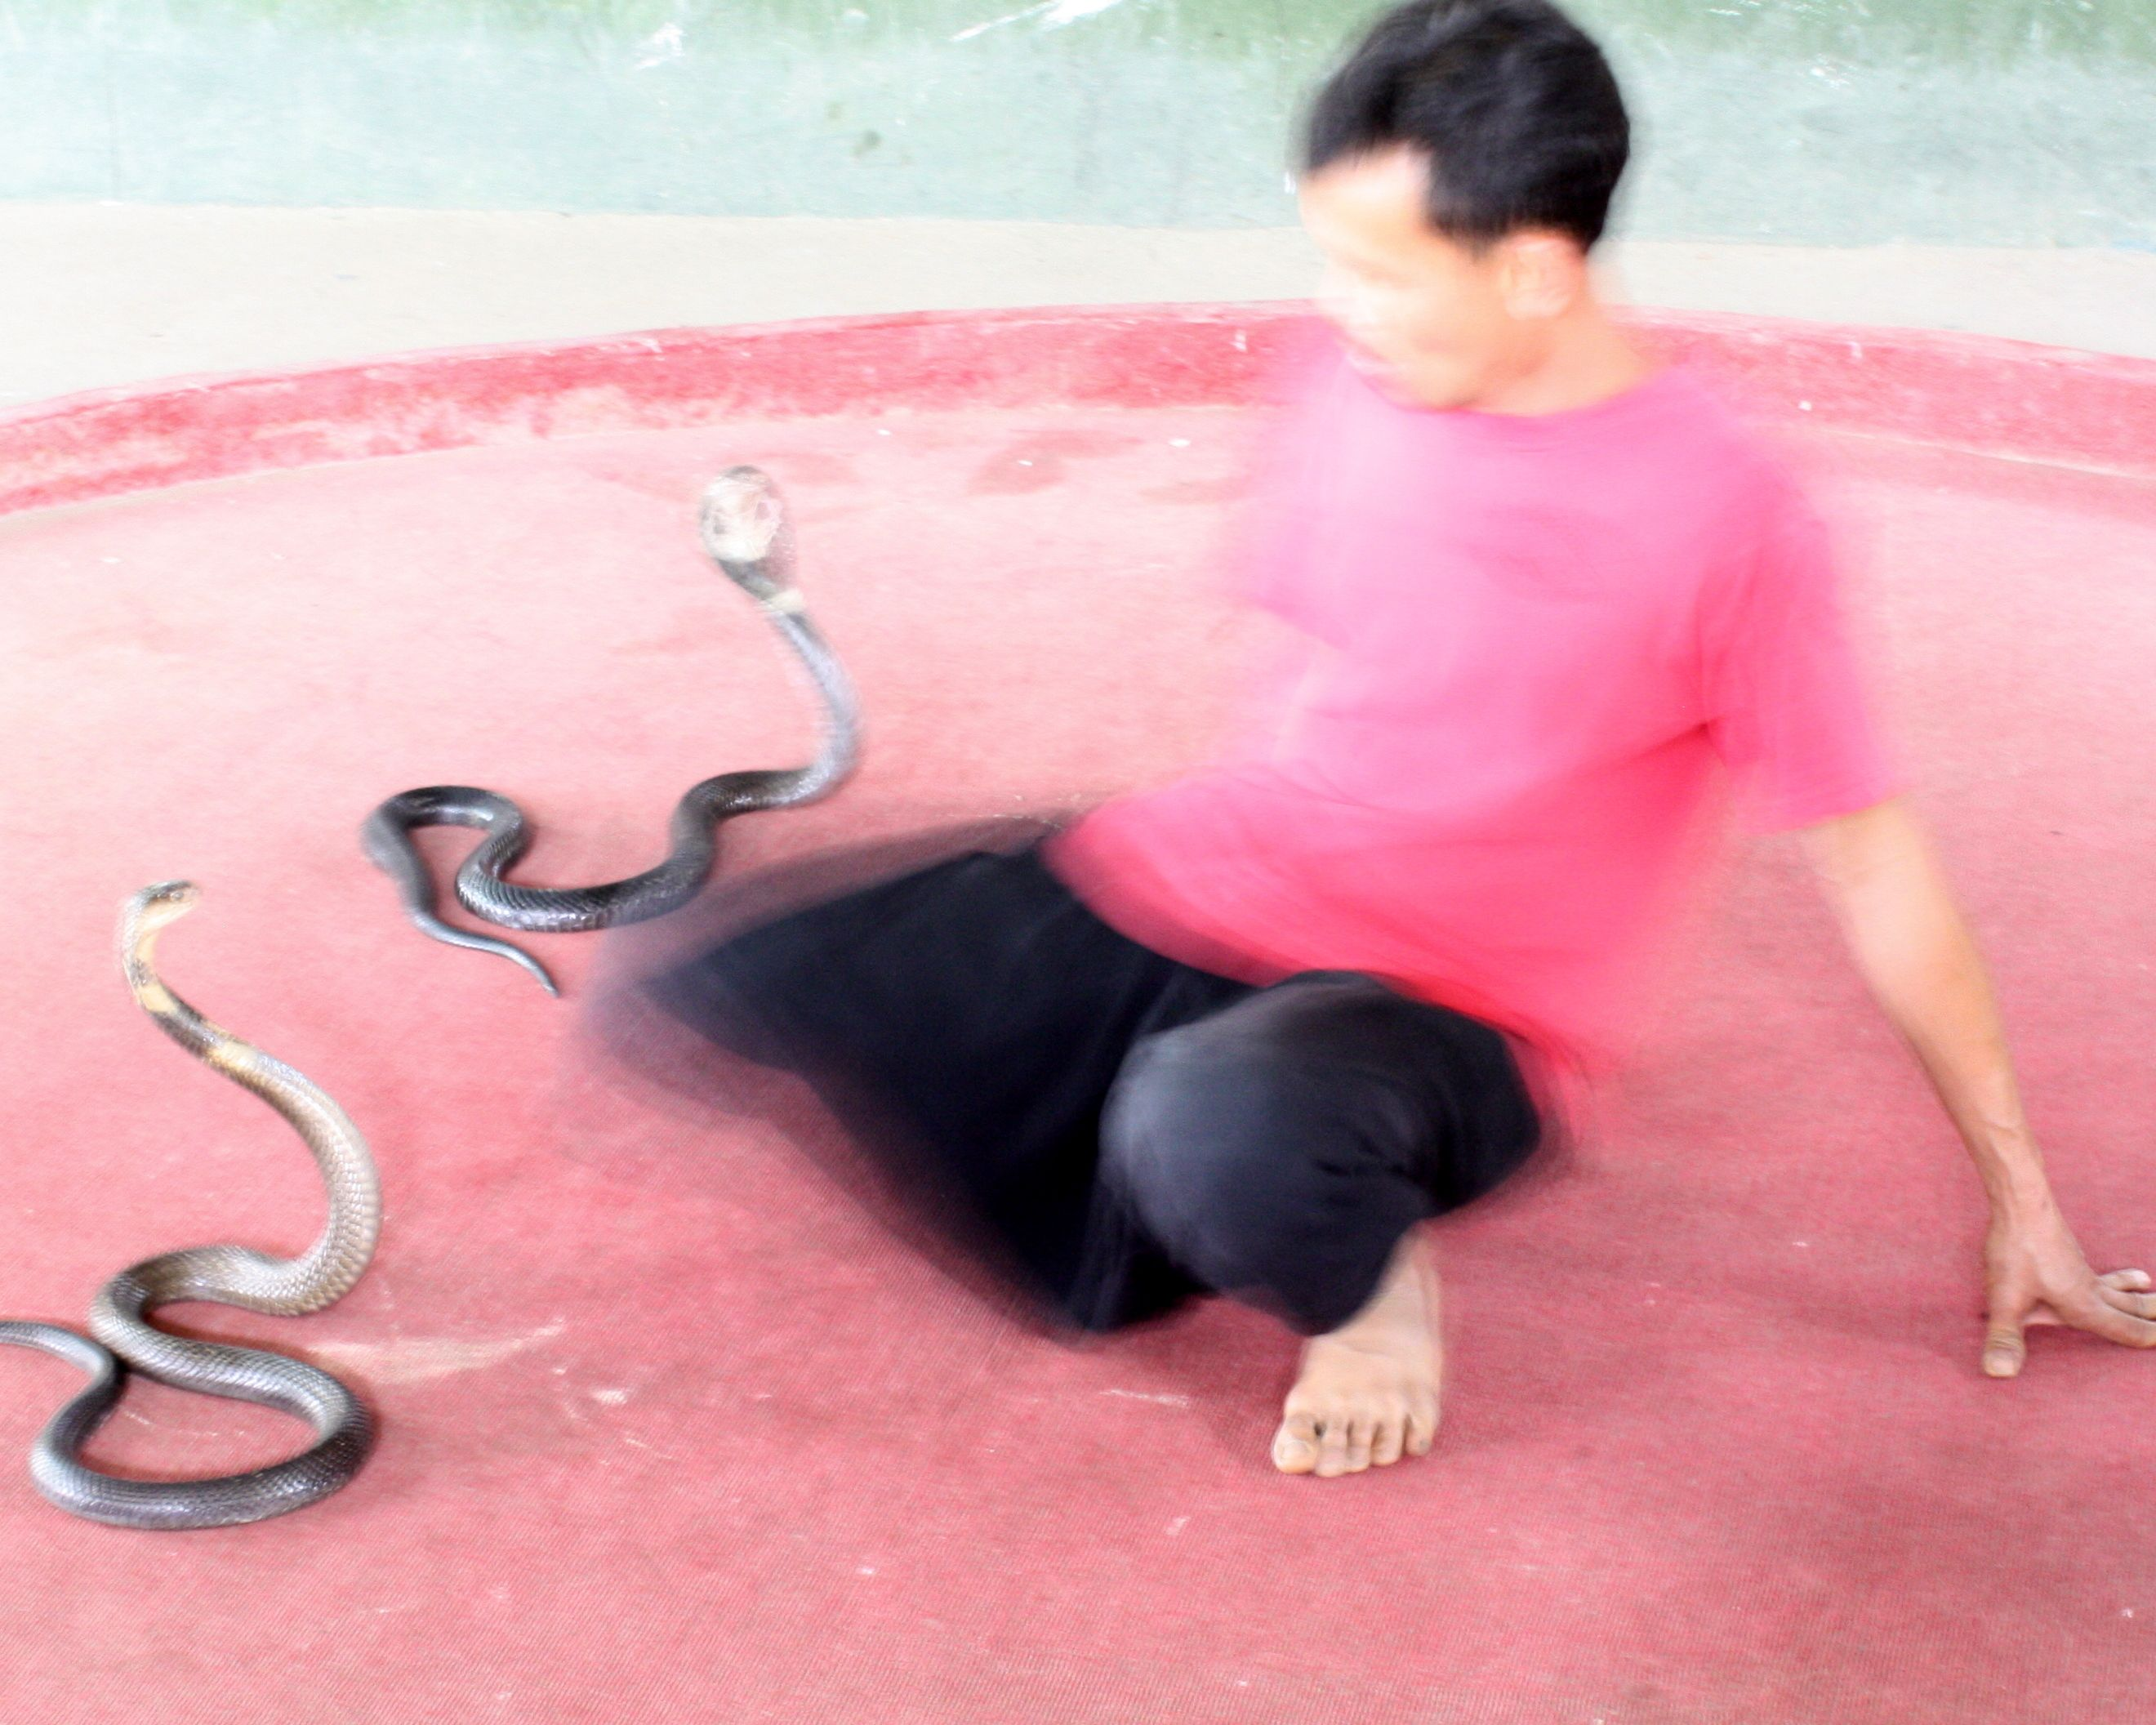 Dance with #snakes